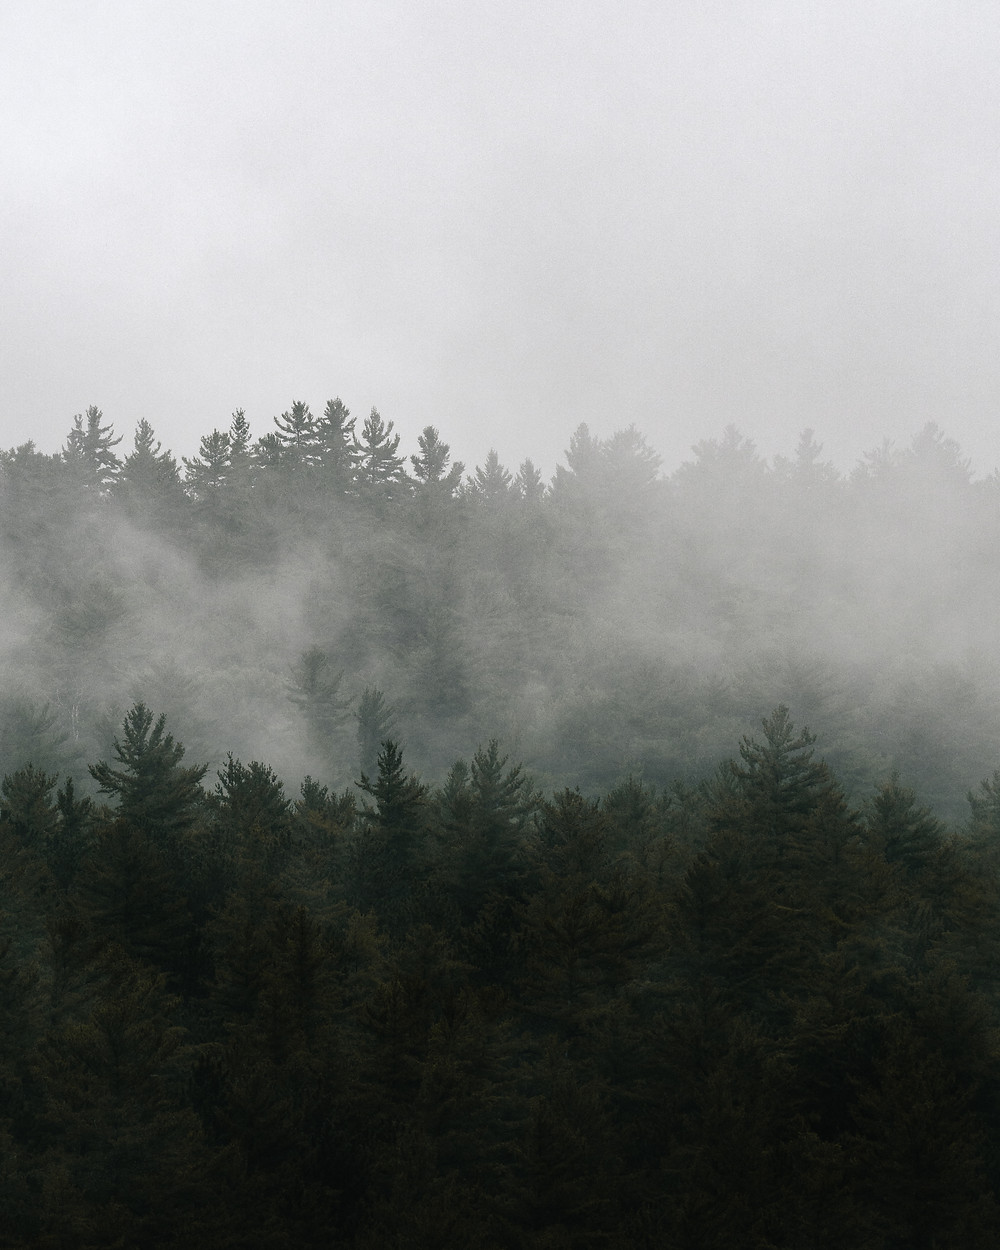 camping backcountry Algonquin lifestyle photography foggy treetops pinetrees forest michael frymus mfvisuals.ca